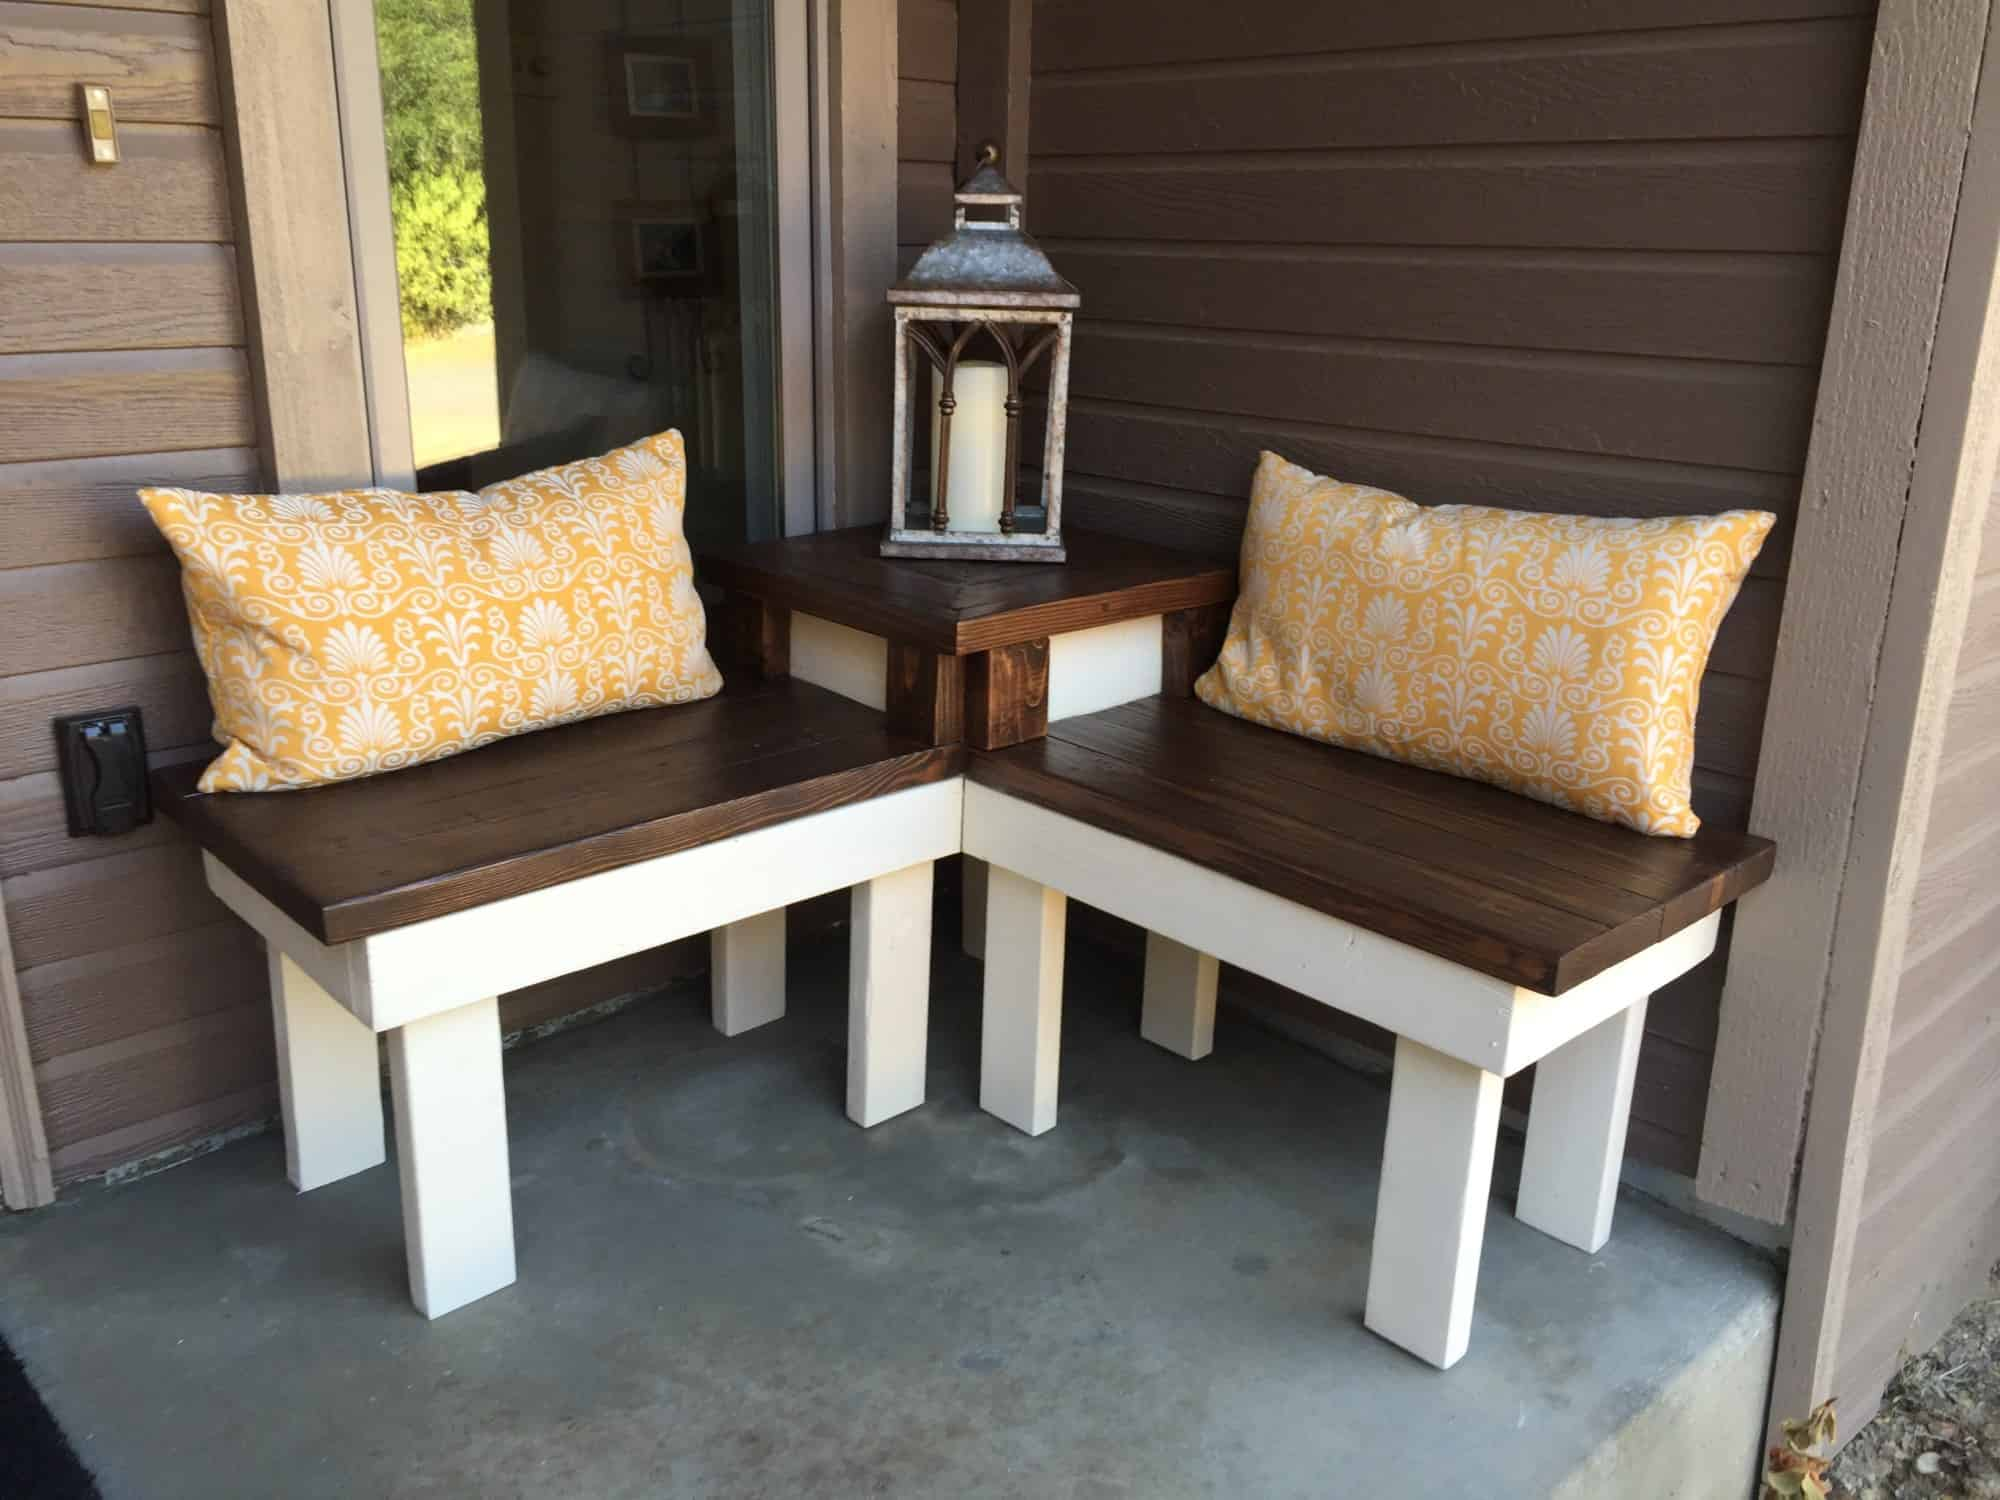 Diy corner bench and table